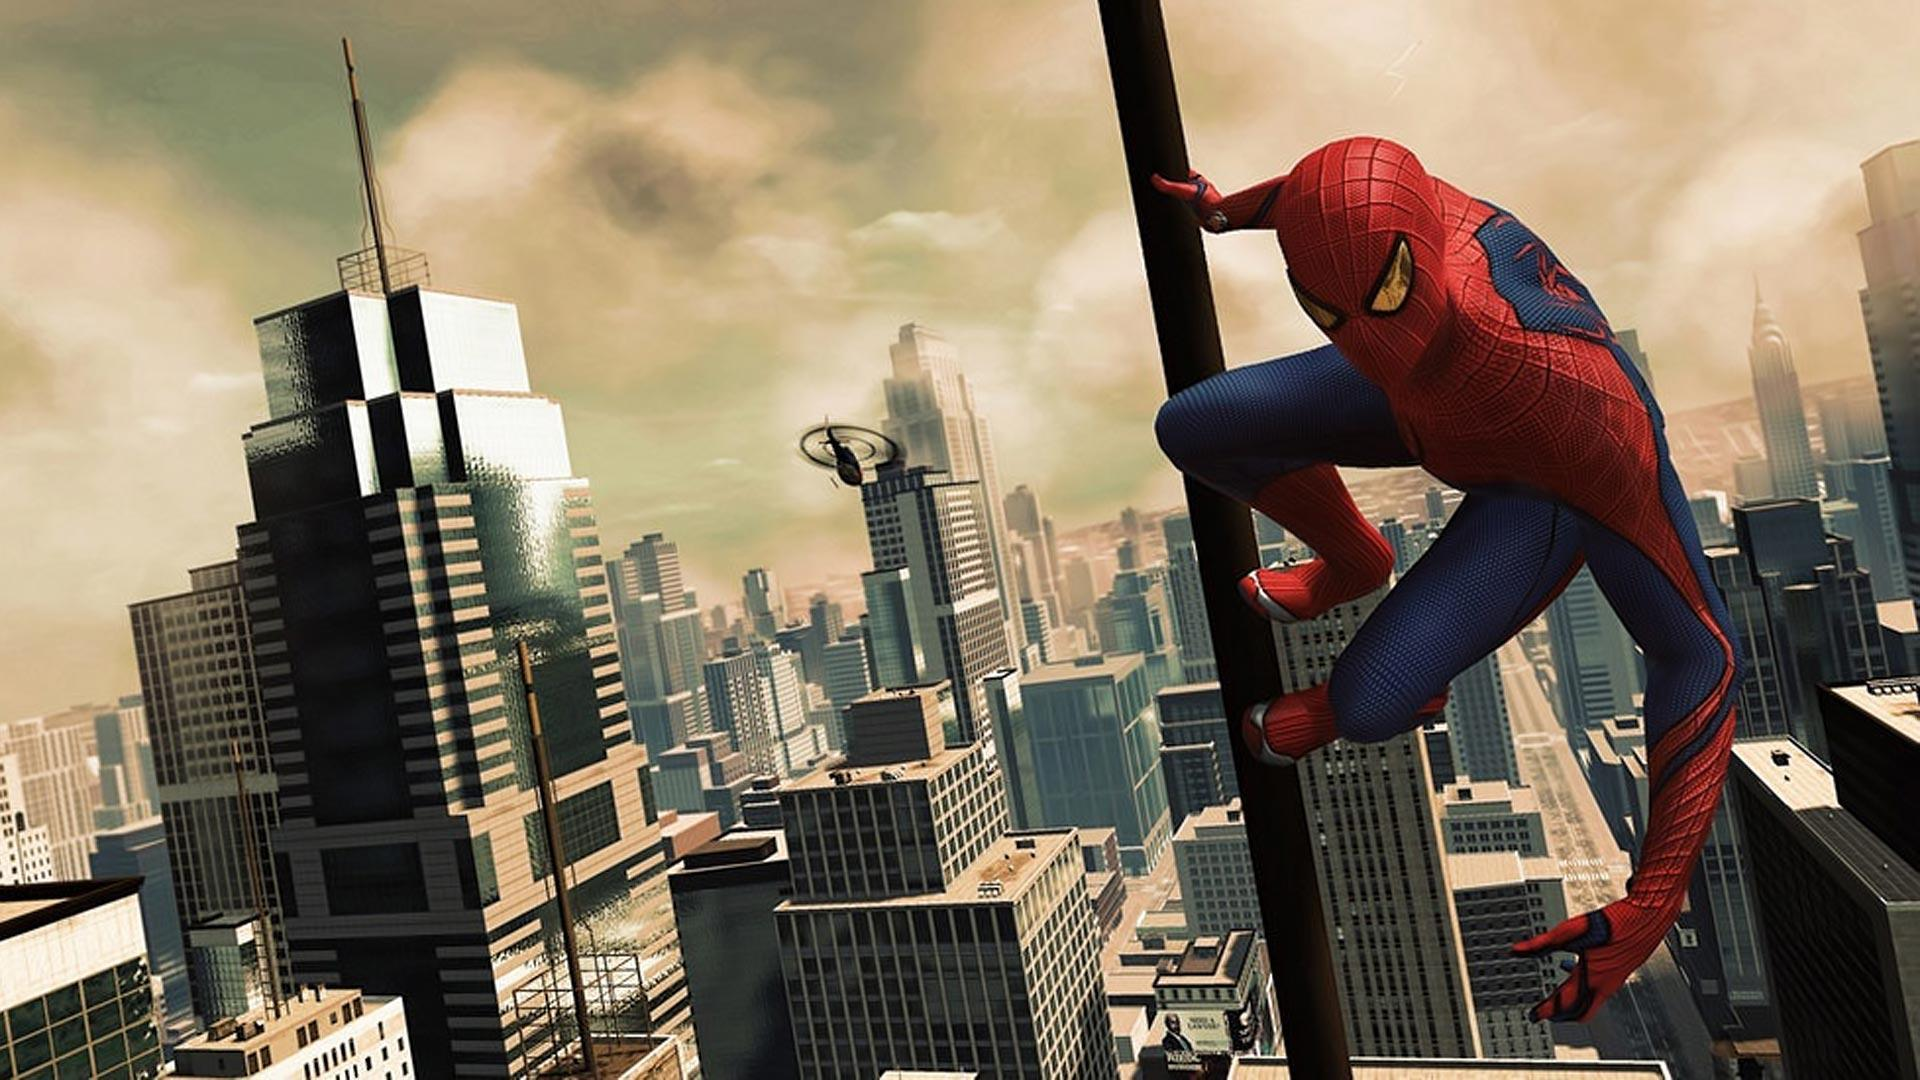 Amazing Spiderman Hd Wallpaper